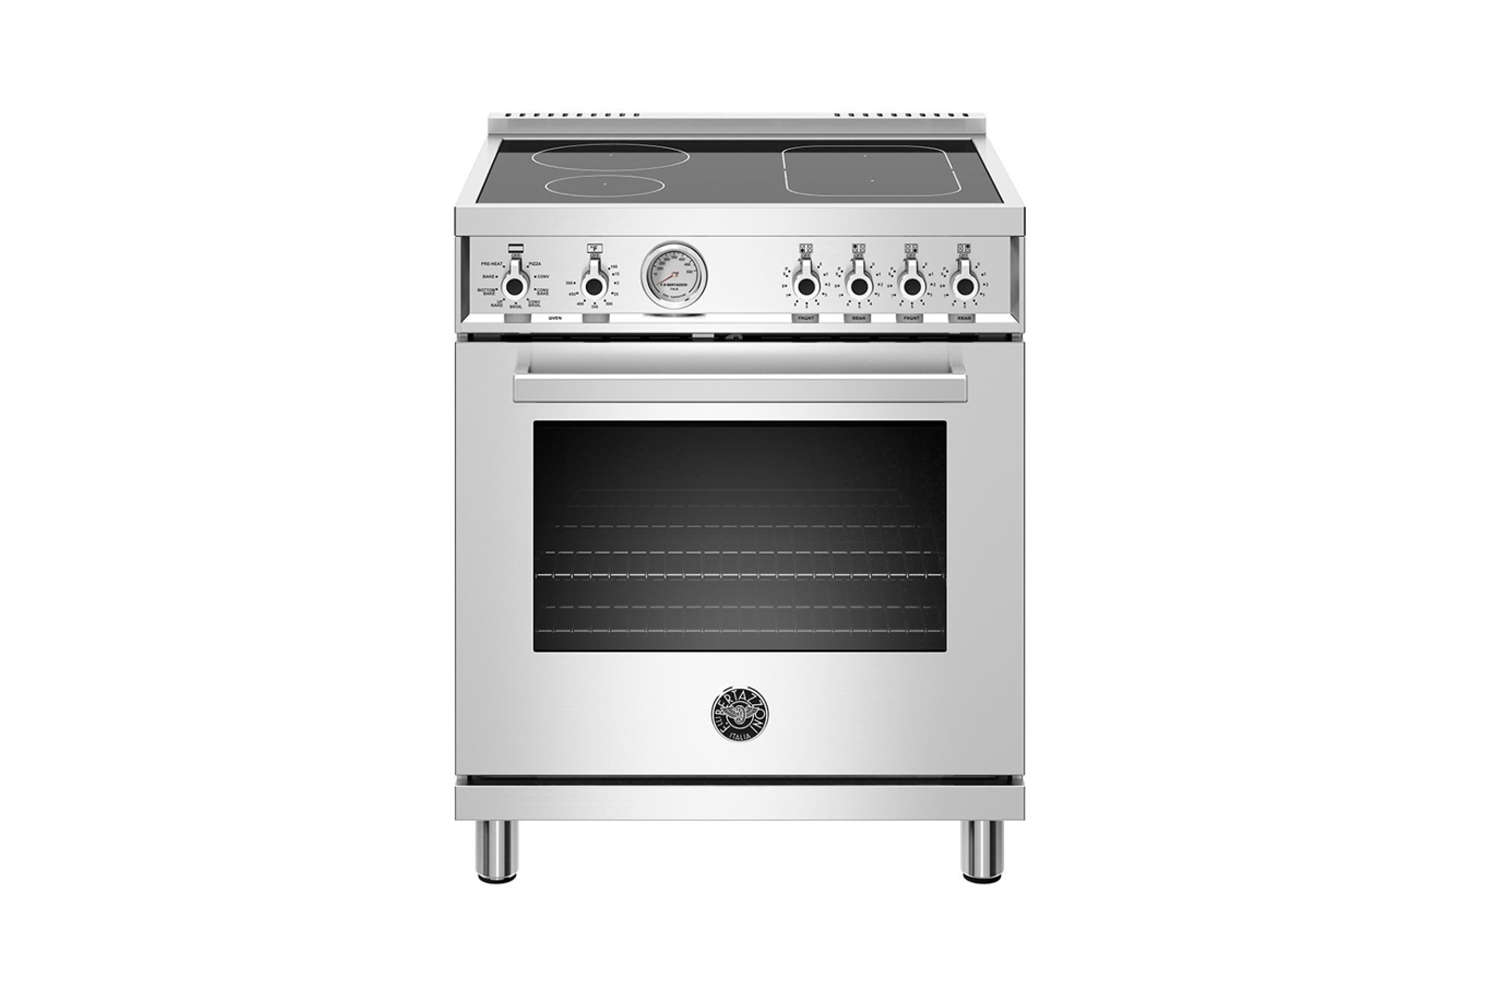 10 Easy Pieces: Induction Ranges - Remodelista